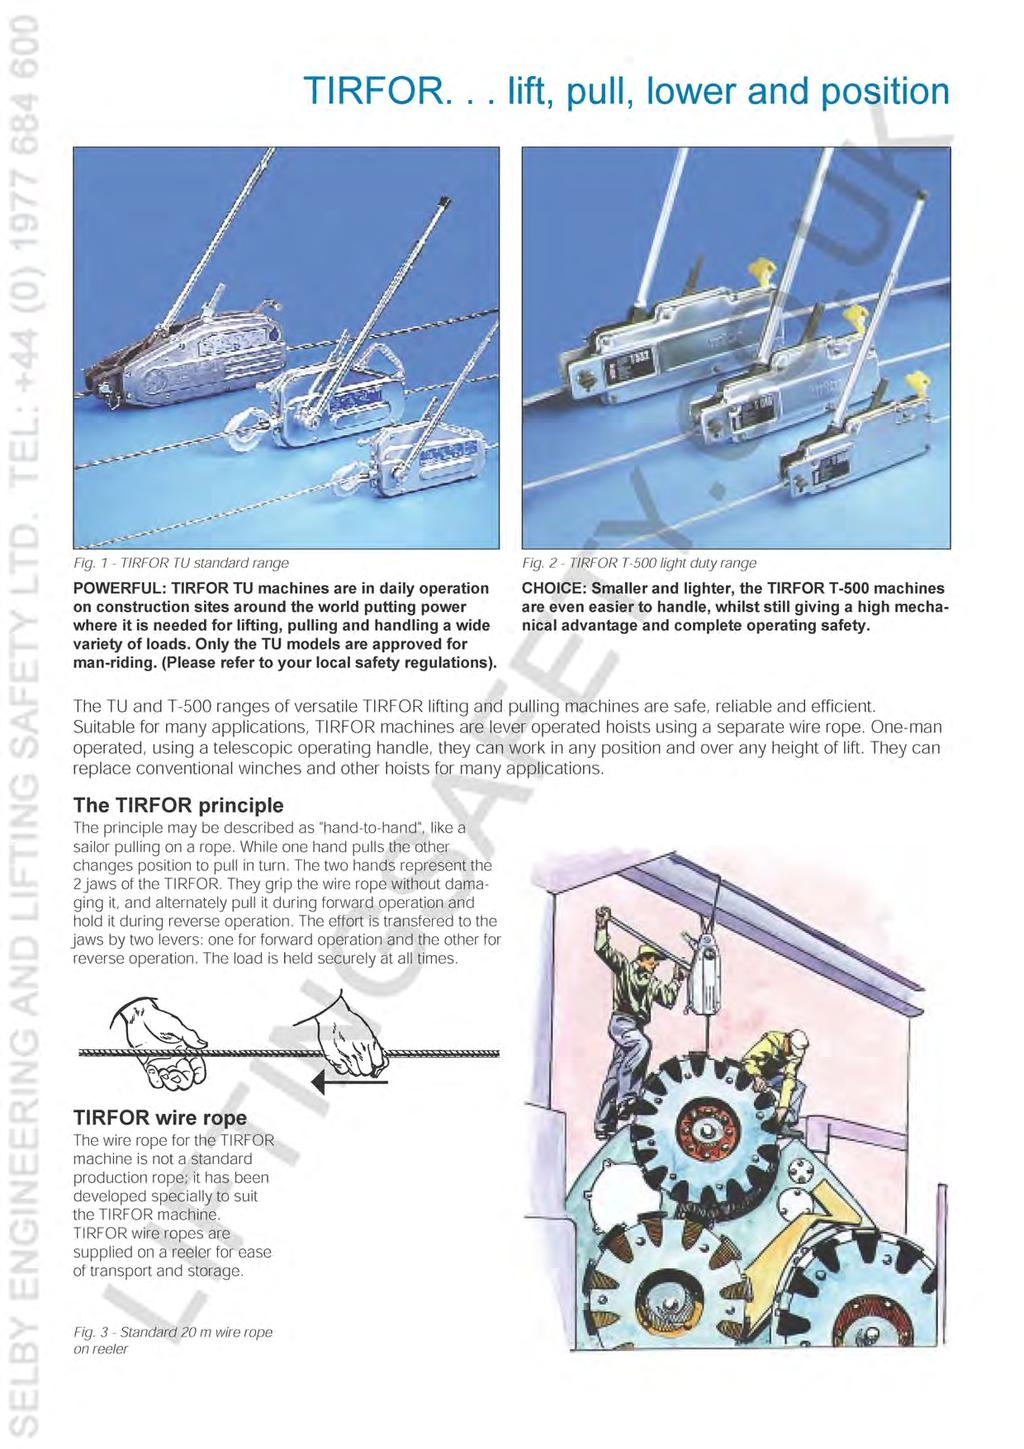 tirfor lifting and pulling machines with unlimited wire rope cle~ - PDF